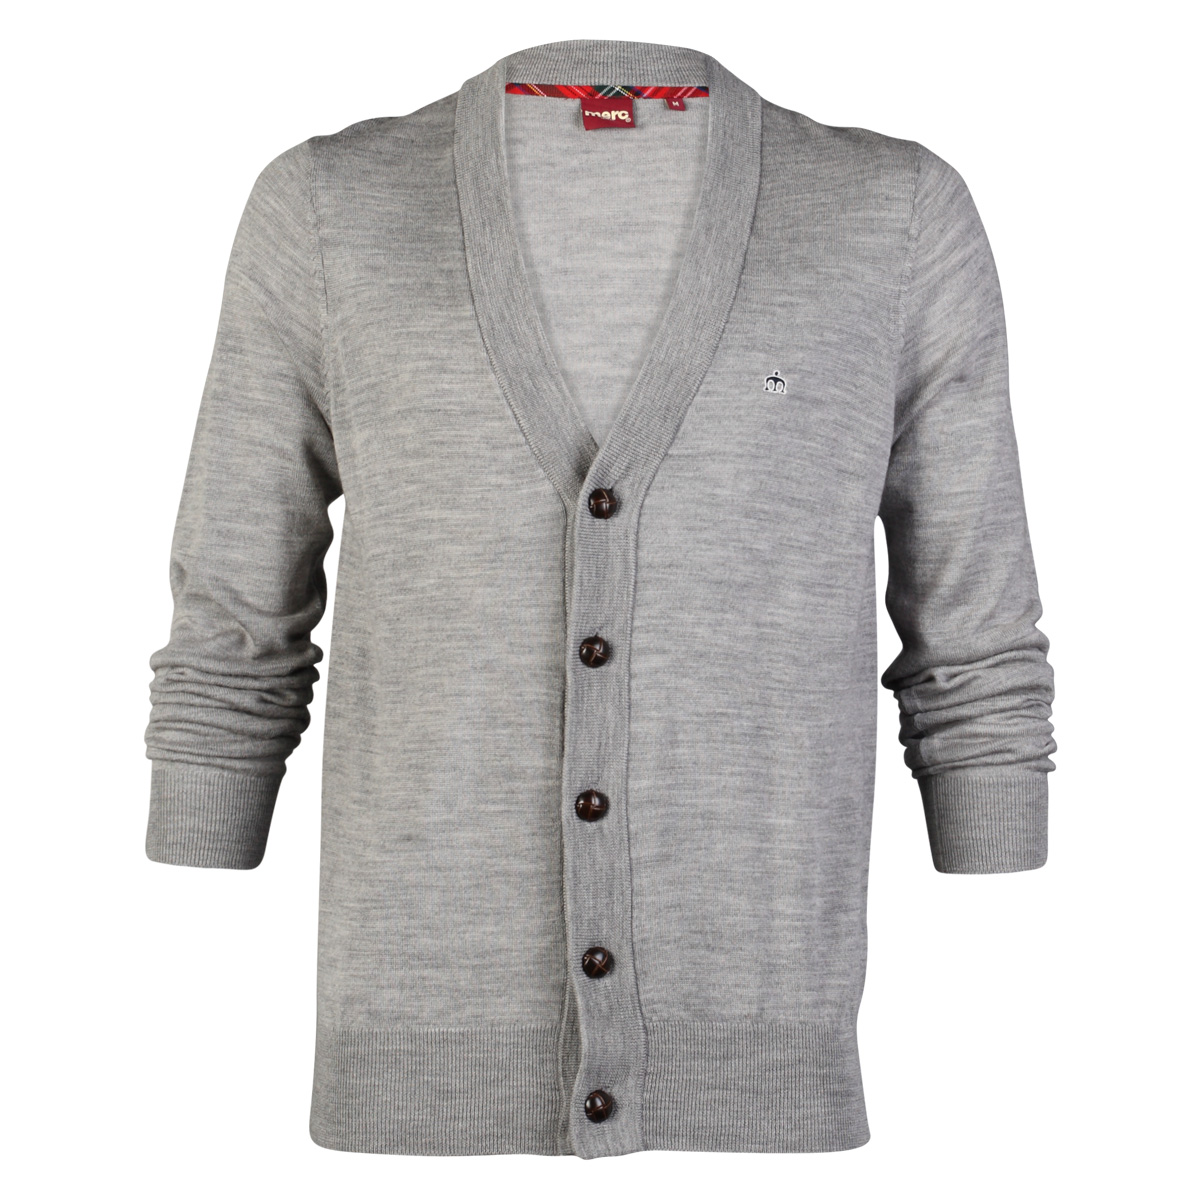 NEW MENS MERC HARRIS KNITTED V NECK STRETCH BUTTON UP CASUAL ...